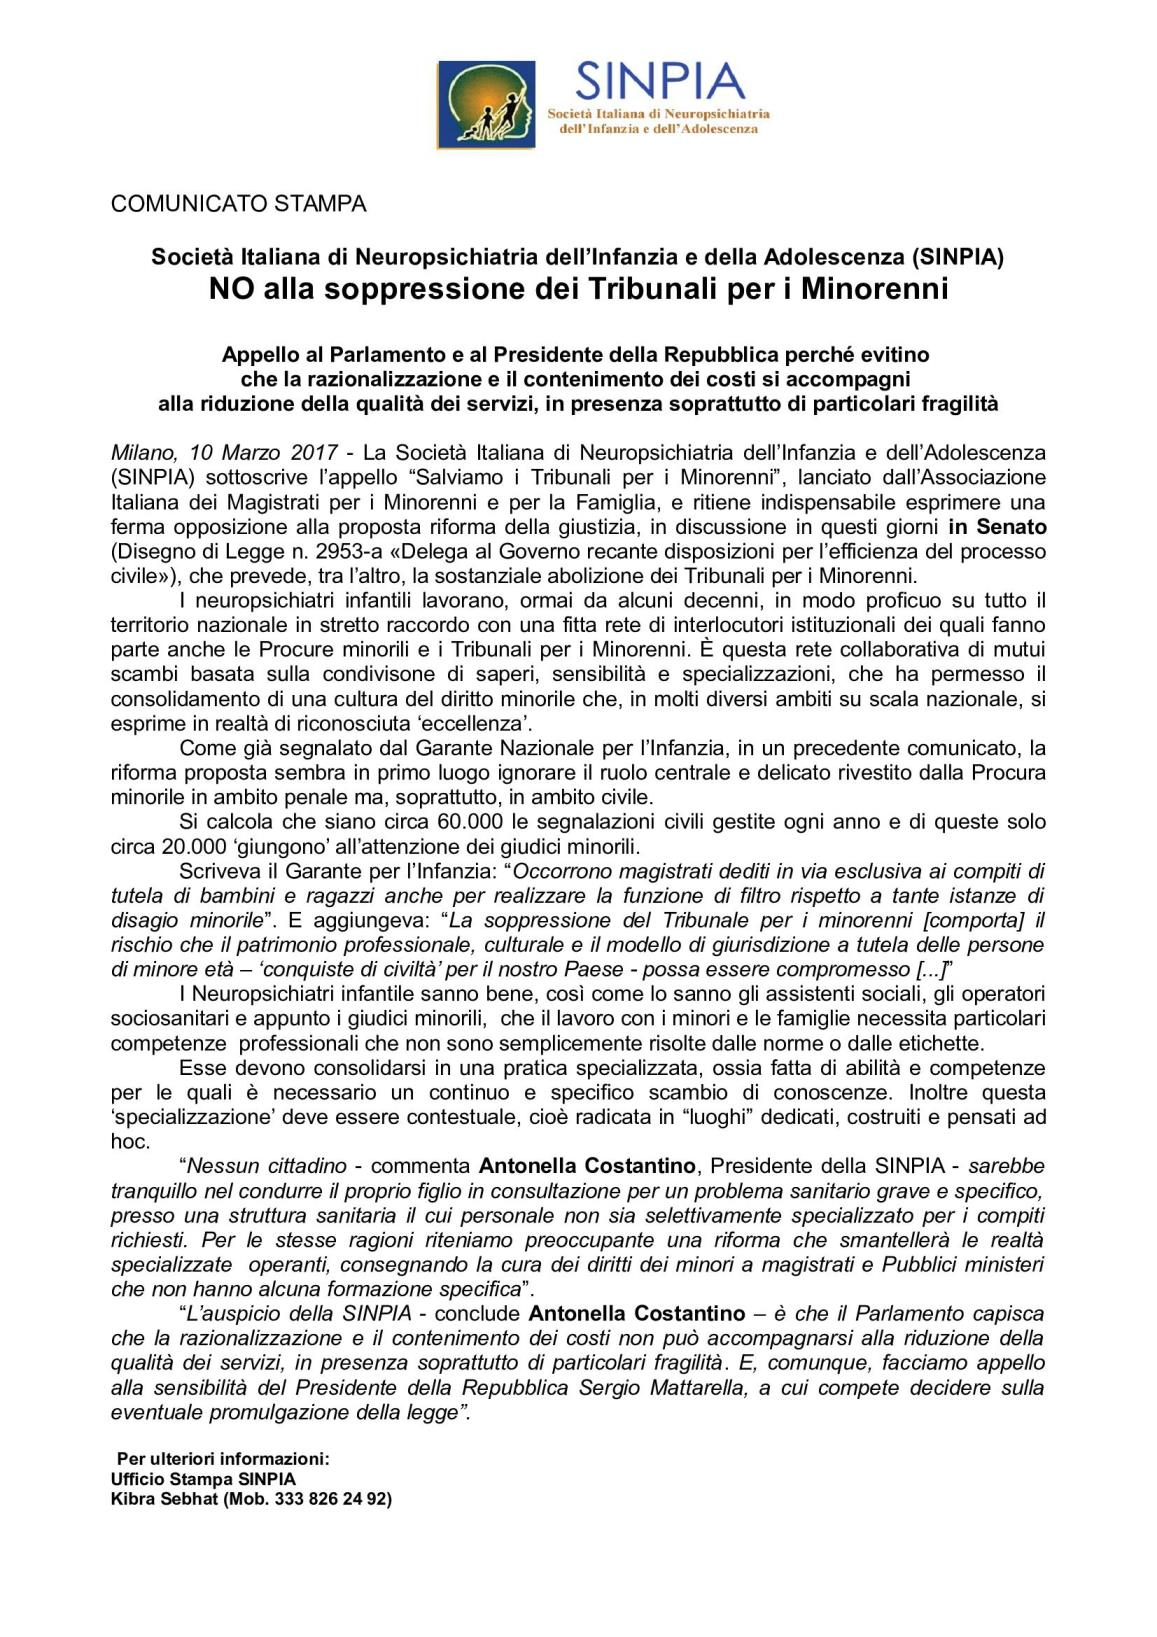 CS SINPIA NO all abolizione dei Tribunali minorili 000